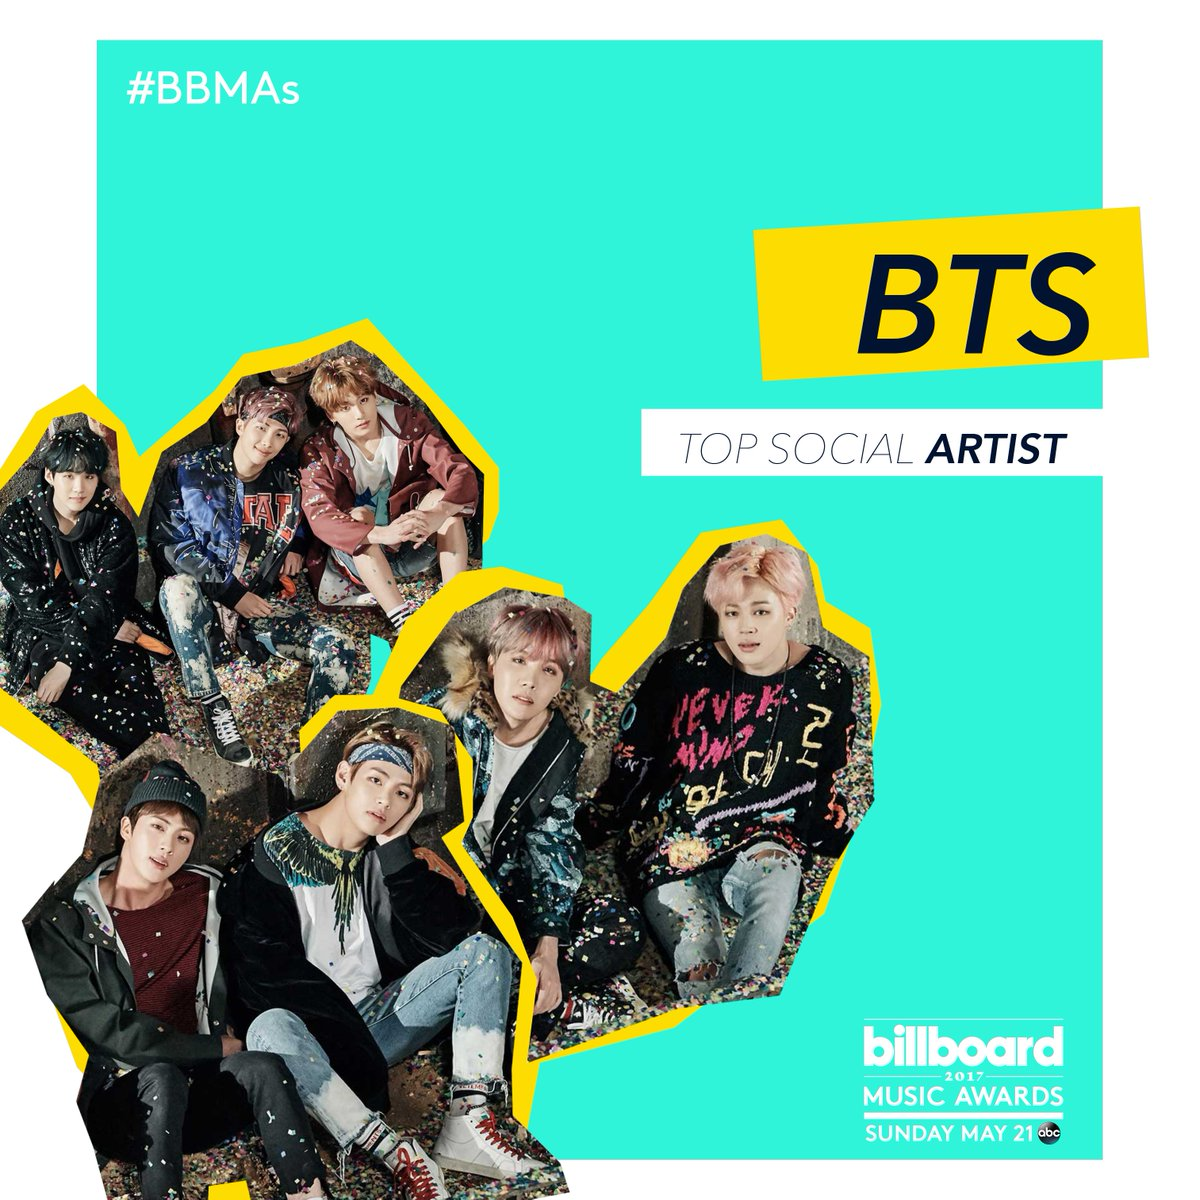 .@BTS_twt is the first K-pop group to receive a #BBMAs nomination and they\'re up for Top Social Artist! 👏